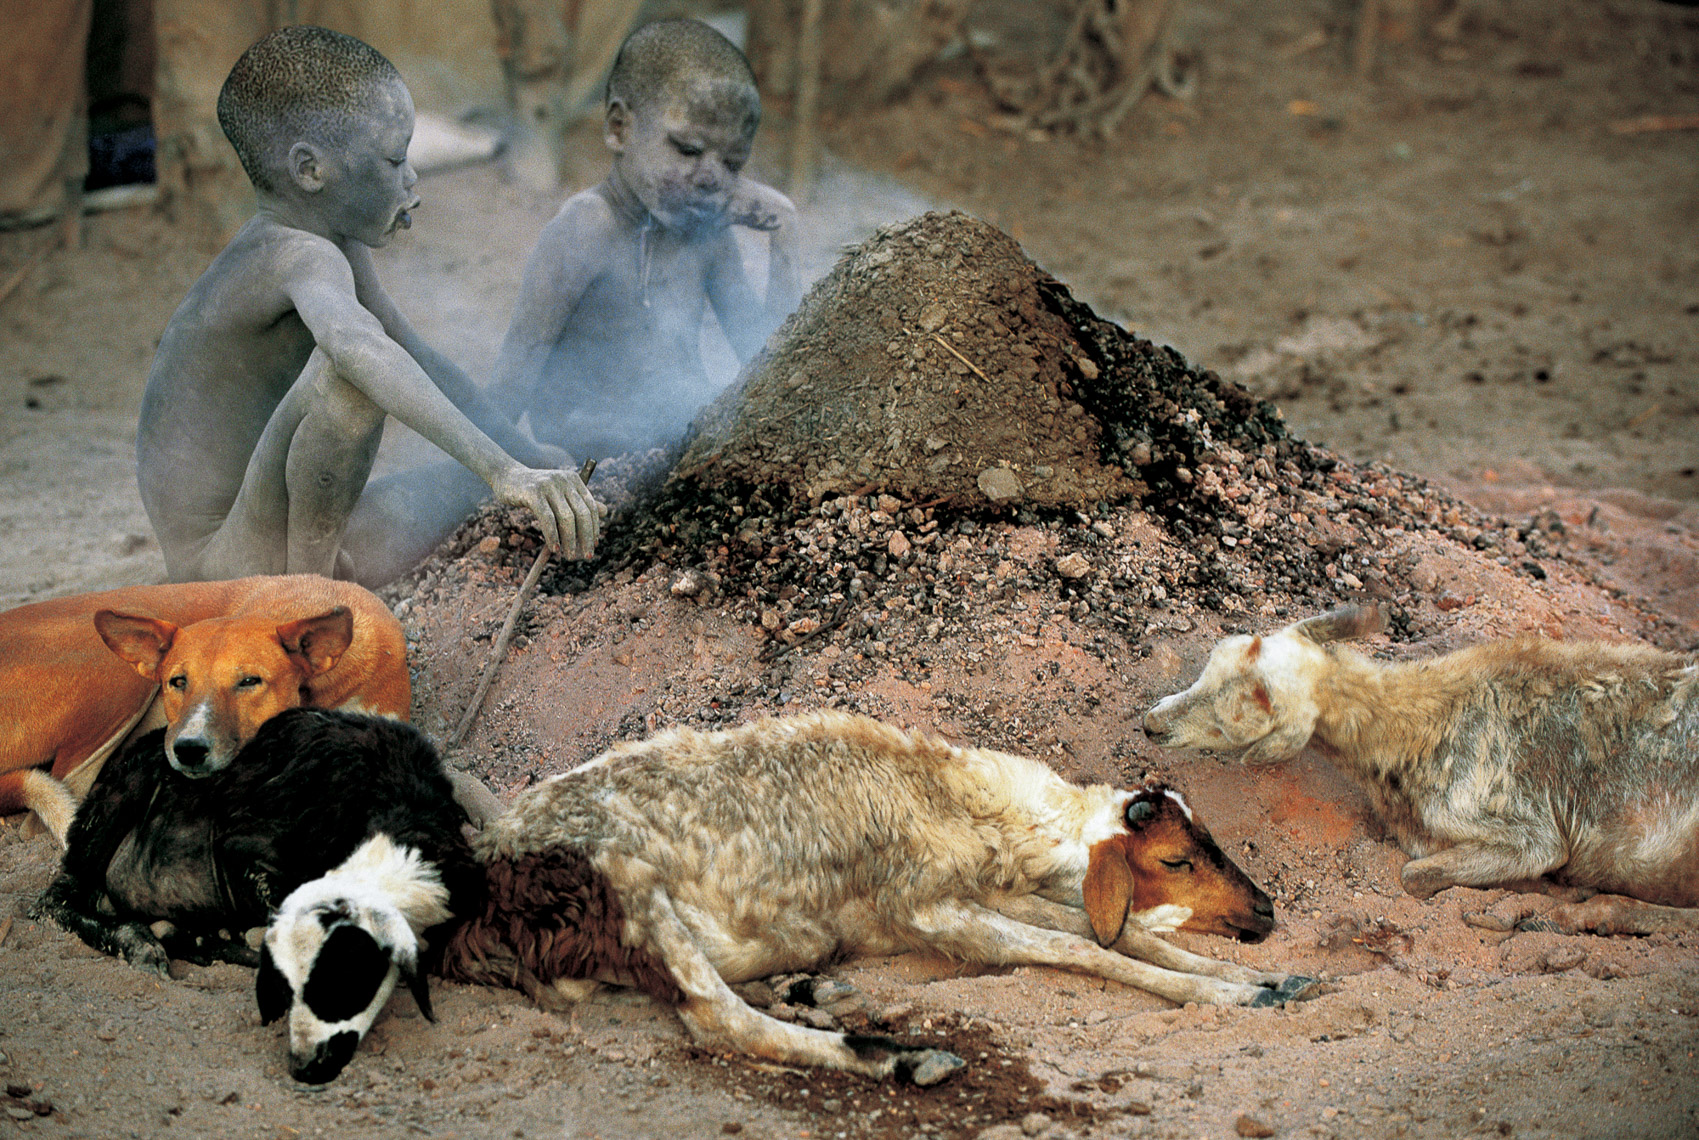 Dinka Children by Fire Side, South Sudan